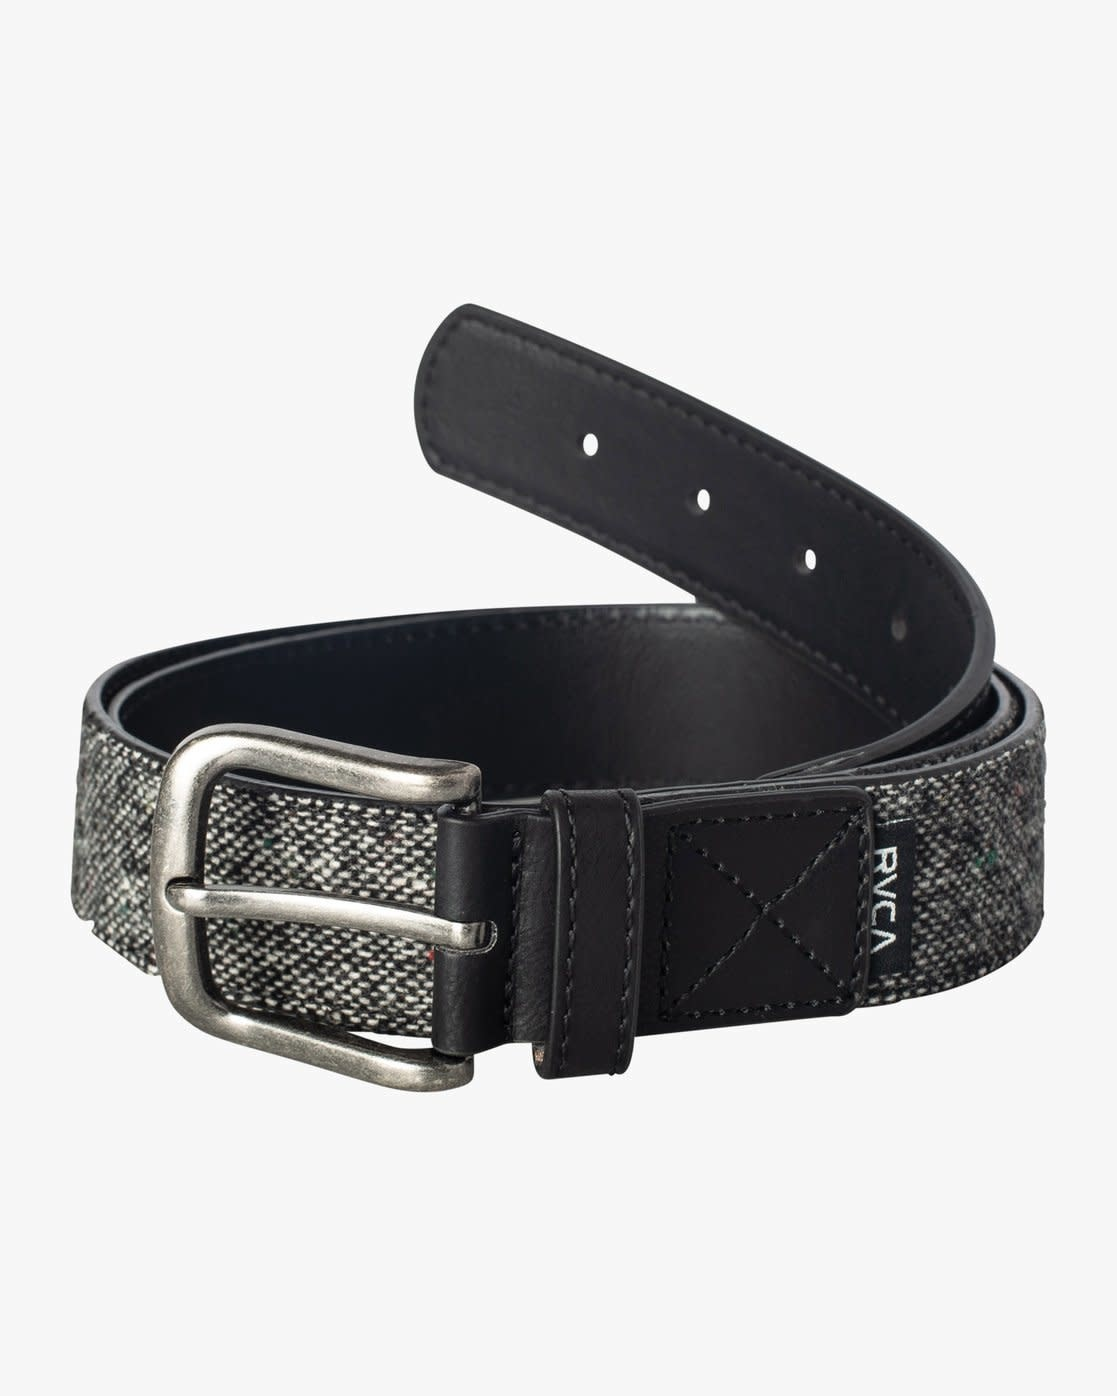 RVCA Leisure Belt Black/Grey